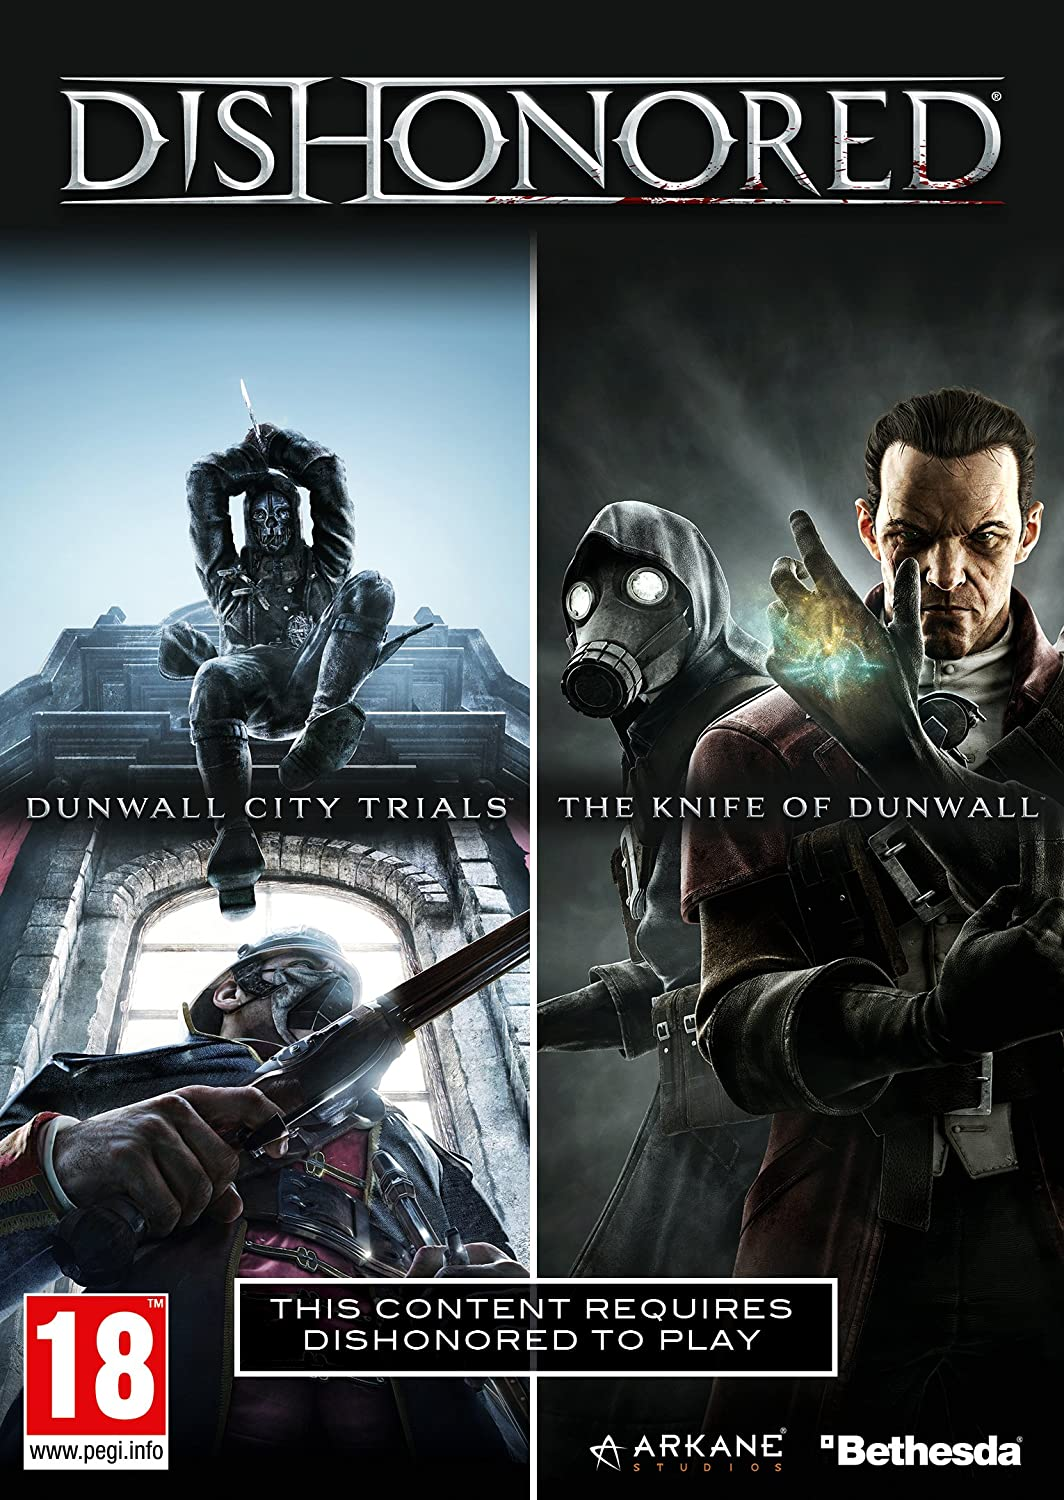 Dishonored Dlc Double Pack: Dunwall City Trials And The Knife Of ...